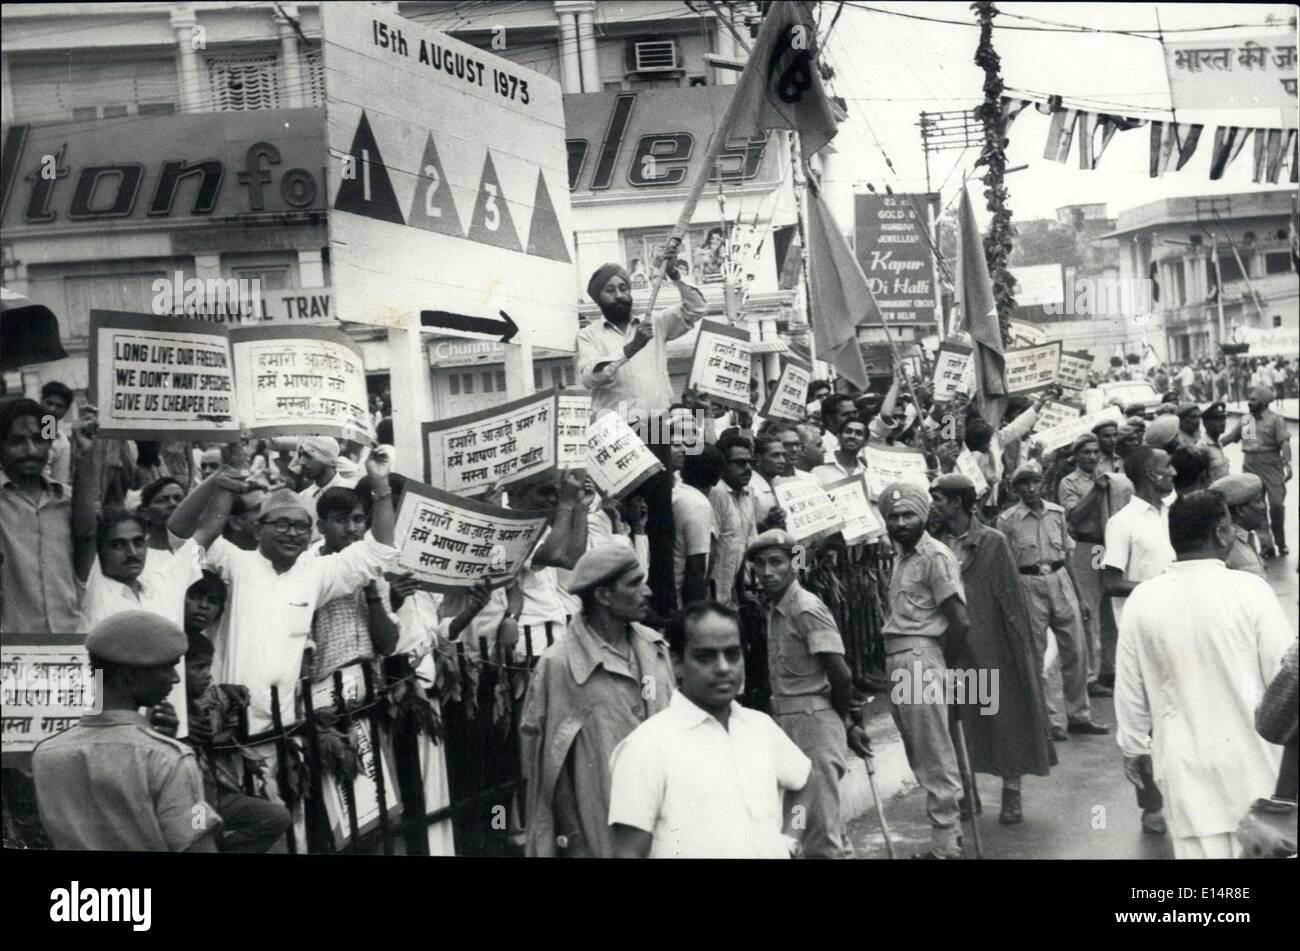 Apr. 18, 2012 - Non-communist opposition parties holding a demonstration at Delhi Gate to protest against the rise in prices, as Prime Minister passed from Delhi Gate on her way to address the Nation on the occasion of 26th Anniversary of India's Independence Day on August 15th from the historic Red Fort in Delhi. - Stock Image